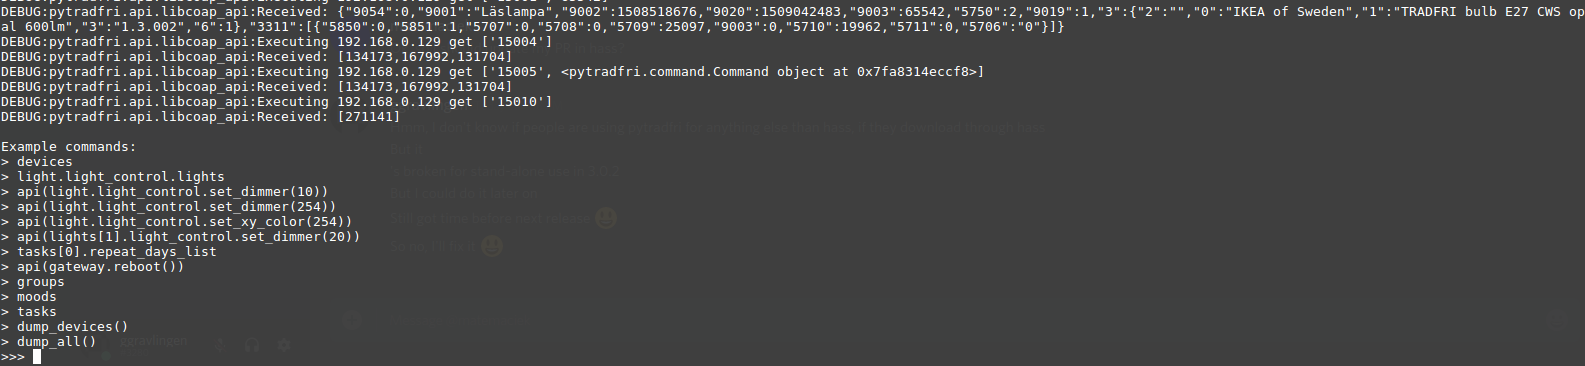 Screenshot of command line interface